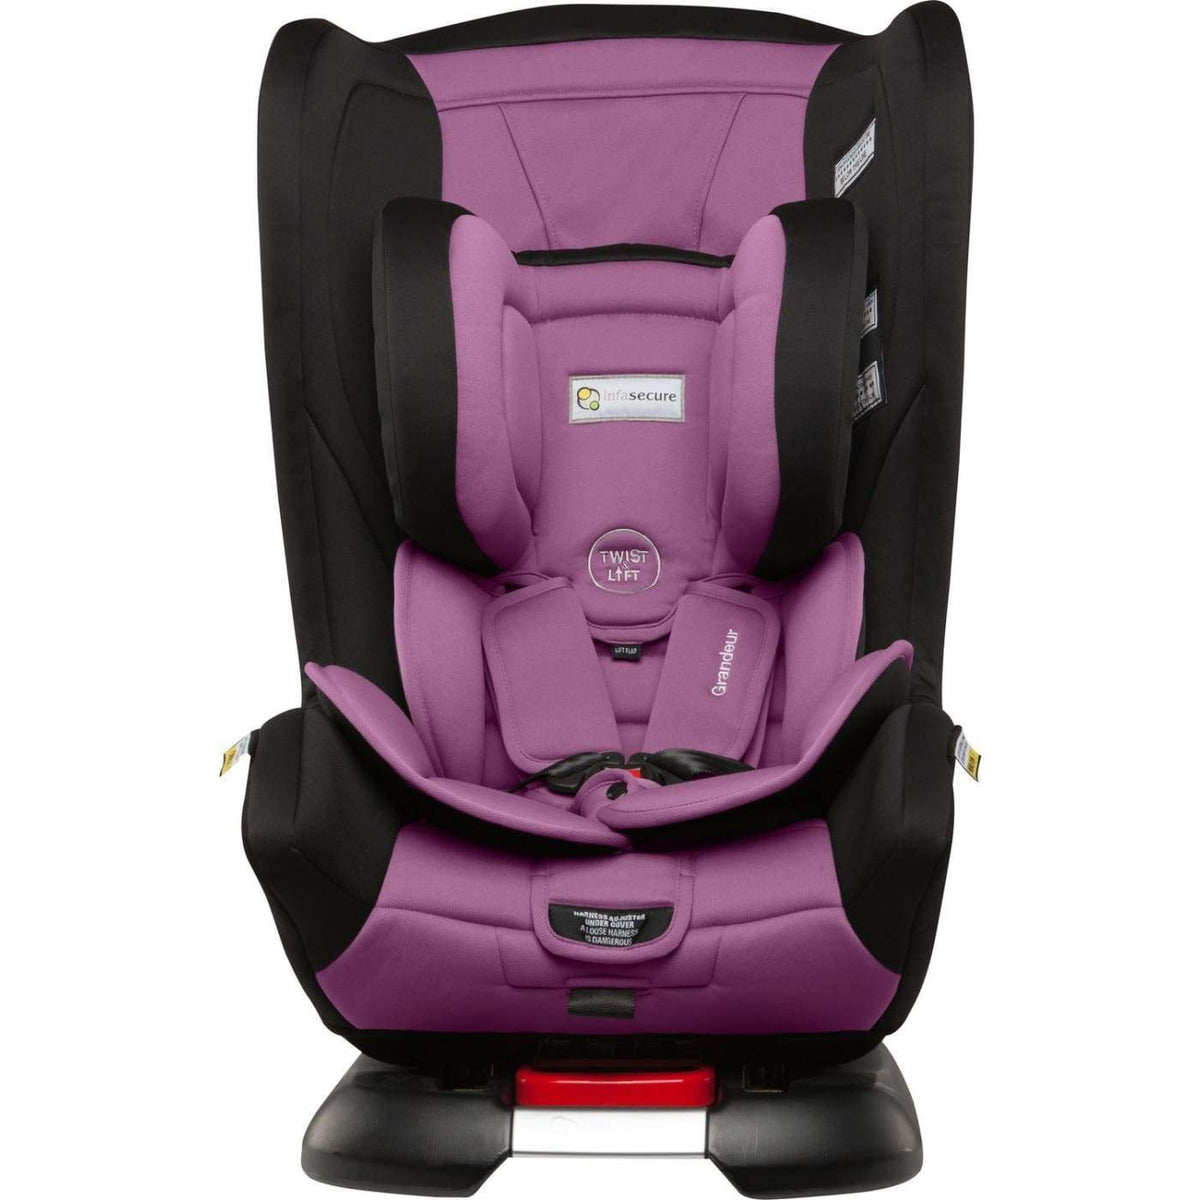 InfaSecure Astra Grandeur Harnessed Convertible Car Seat 0-8YR - Purple - CAR SEATS - HARNESSED CONV CAR SEATS (0-8YR)